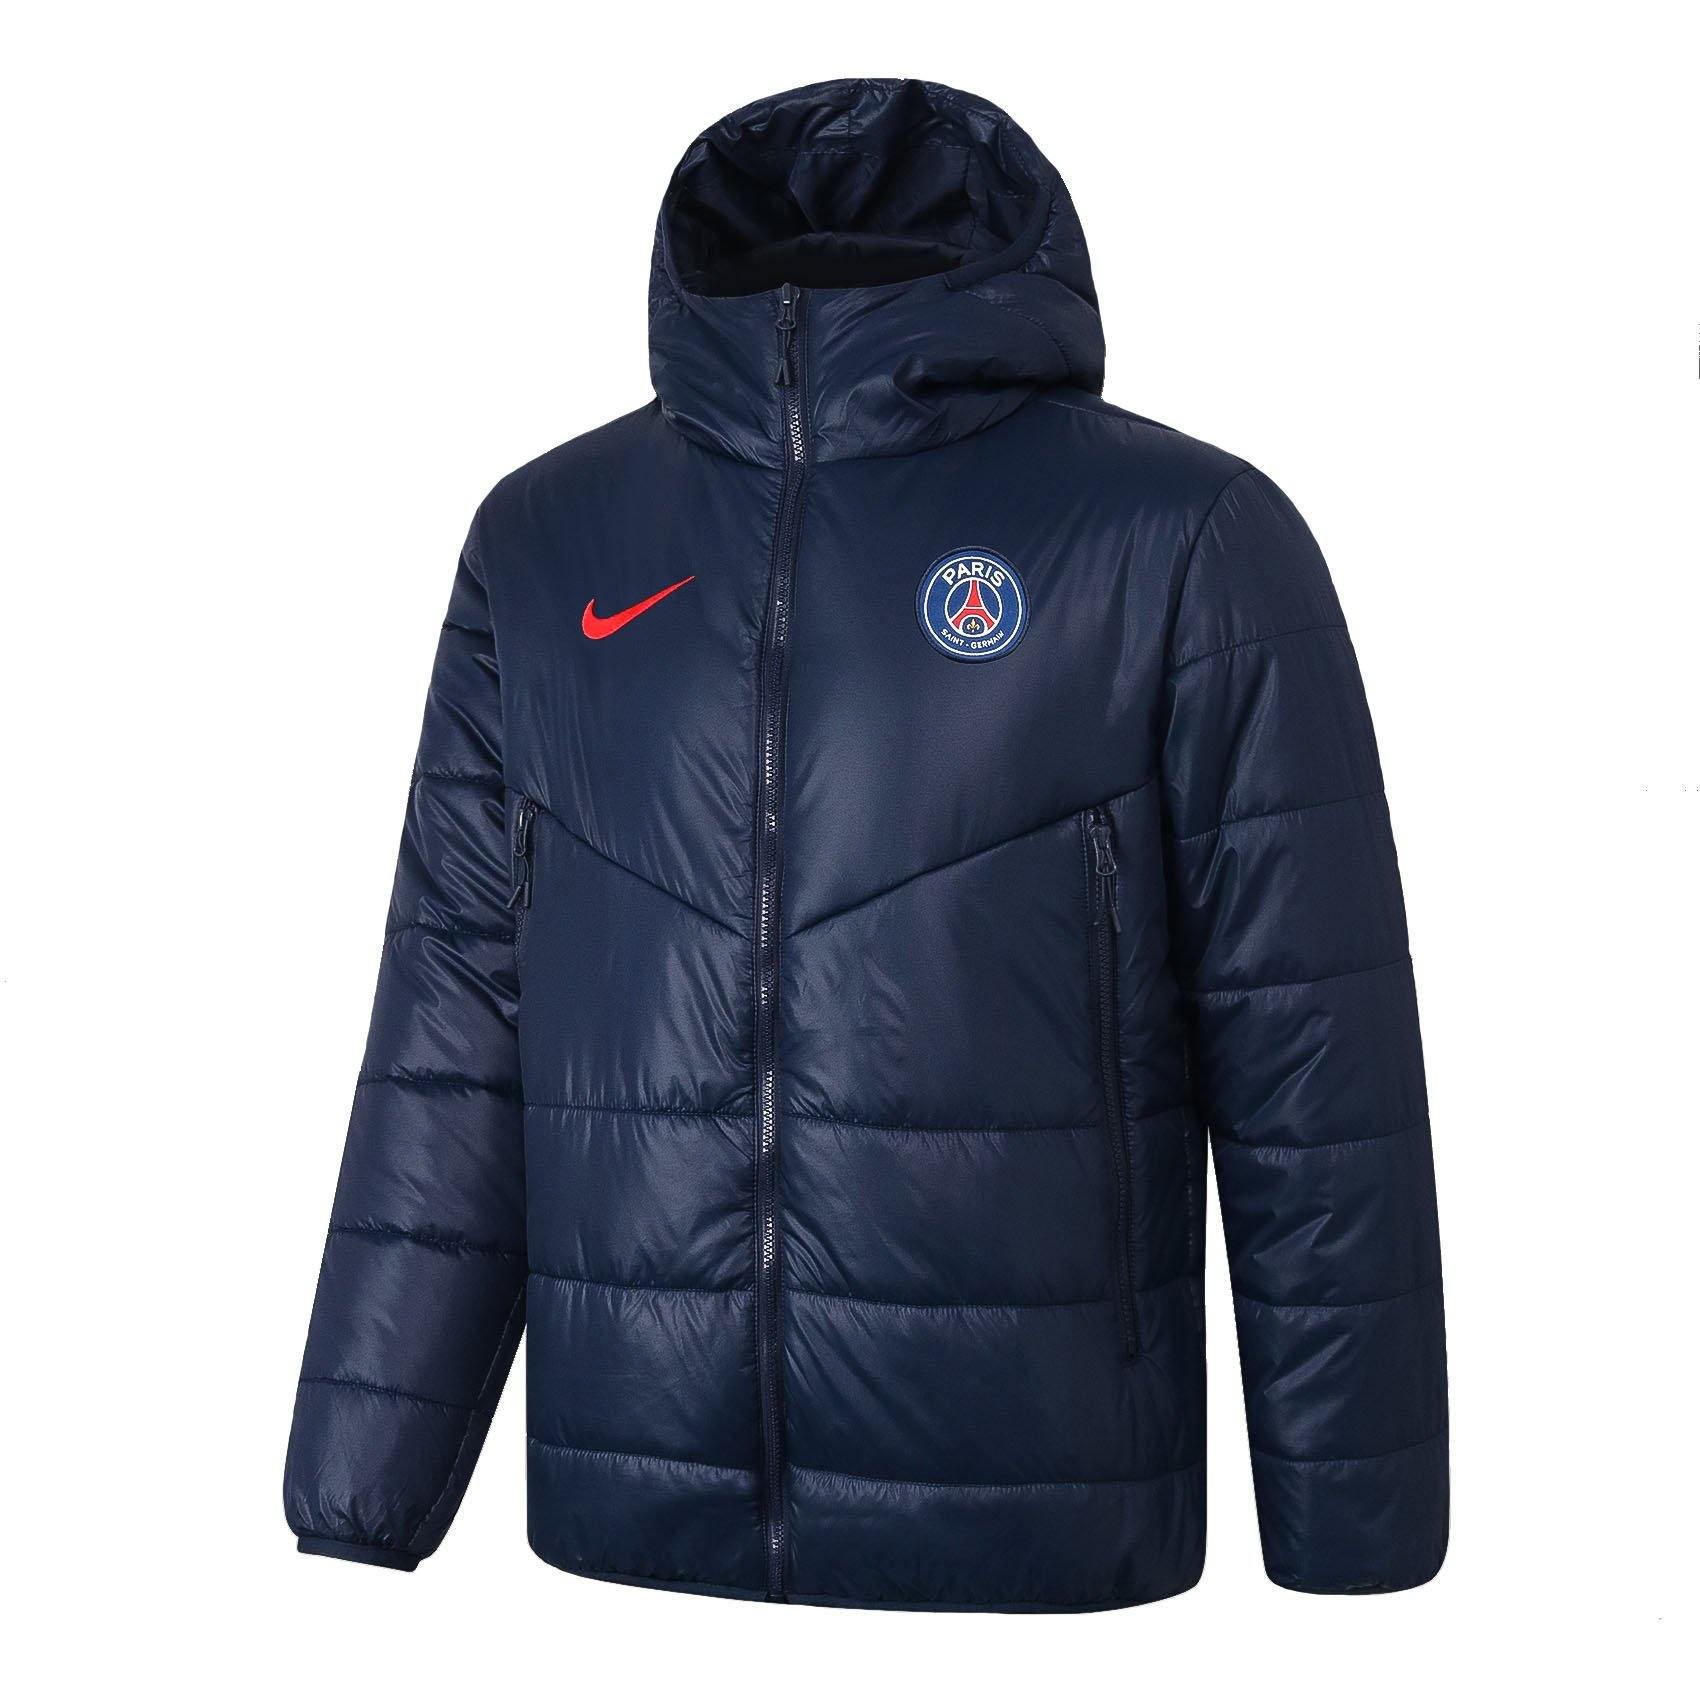 Doudoune PSG Nike Bleu/Rouge 2021 Homme freeshipping - Foot Online